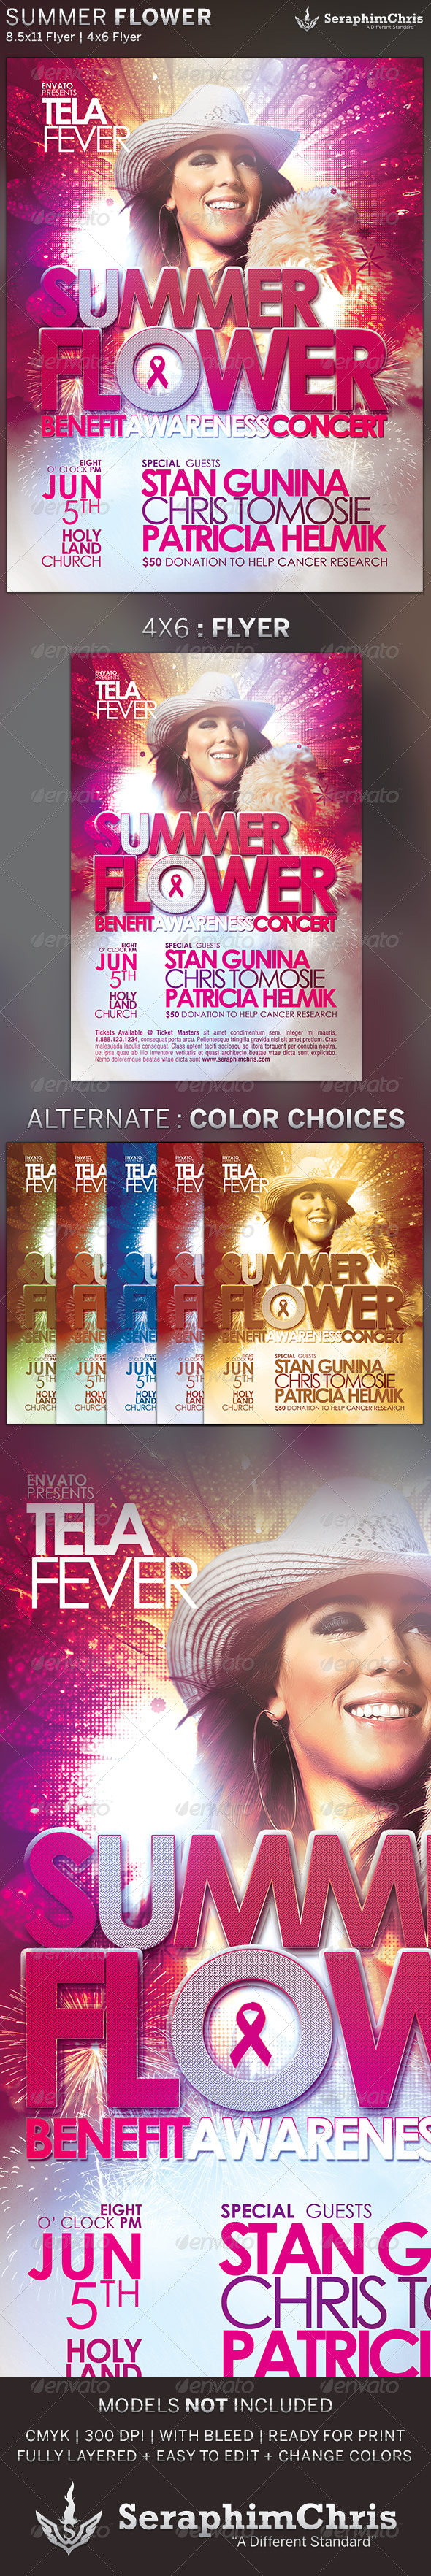 GraphicRiver Summer Flower Church Concert Flyer Template 4518891